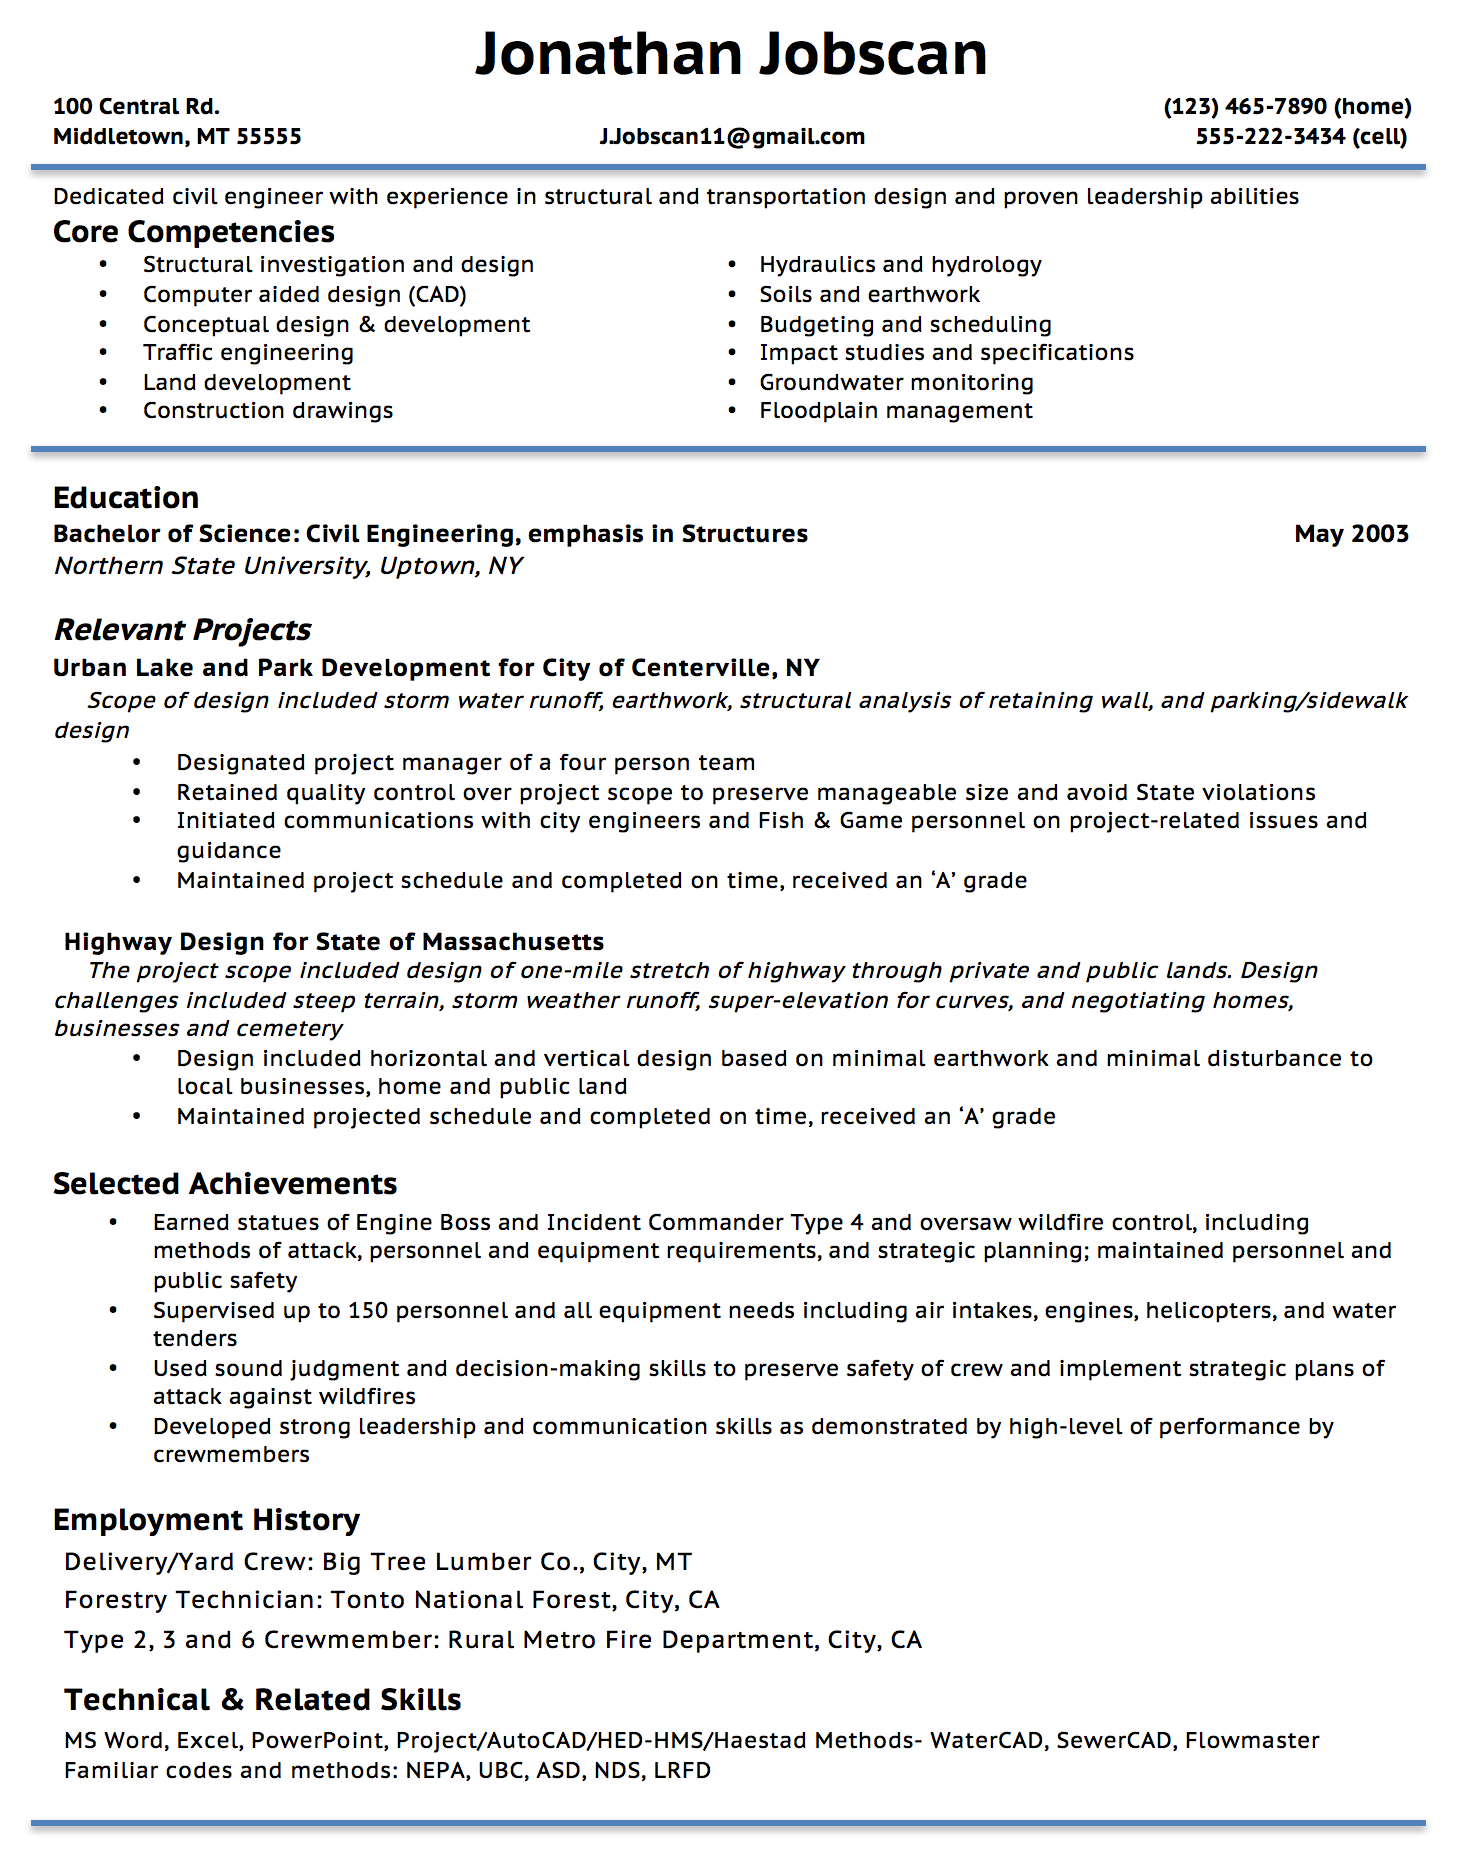 Opposenewapstandardsus  Sweet Resume Writing Guide  Jobscan With Likable Example Of A Functional Resume Format With Cool Landscaping Resume Sample Also Google Resume Templates Free In Addition Resume For Security Officer And Free Resume Builder Template As Well As Resume Promotion Additionally Painters Resume From Jobscanco With Opposenewapstandardsus  Likable Resume Writing Guide  Jobscan With Cool Example Of A Functional Resume Format And Sweet Landscaping Resume Sample Also Google Resume Templates Free In Addition Resume For Security Officer From Jobscanco